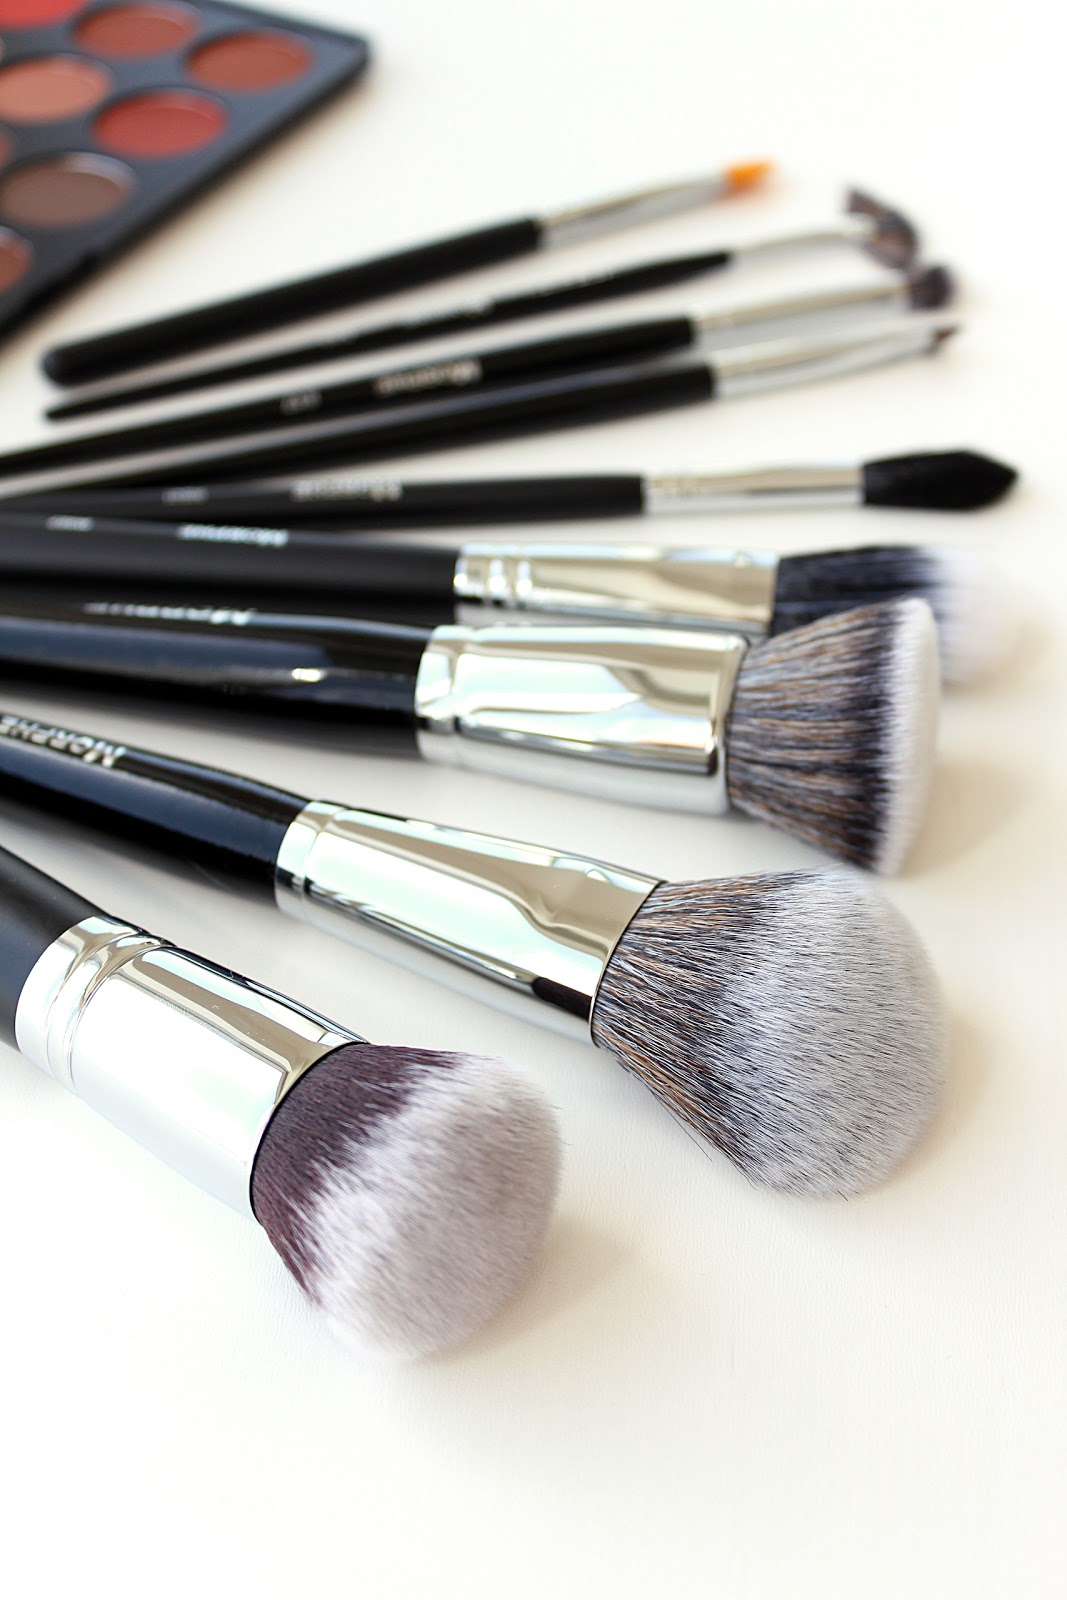 Morphe Brushes Haul   Life in Excess Blog